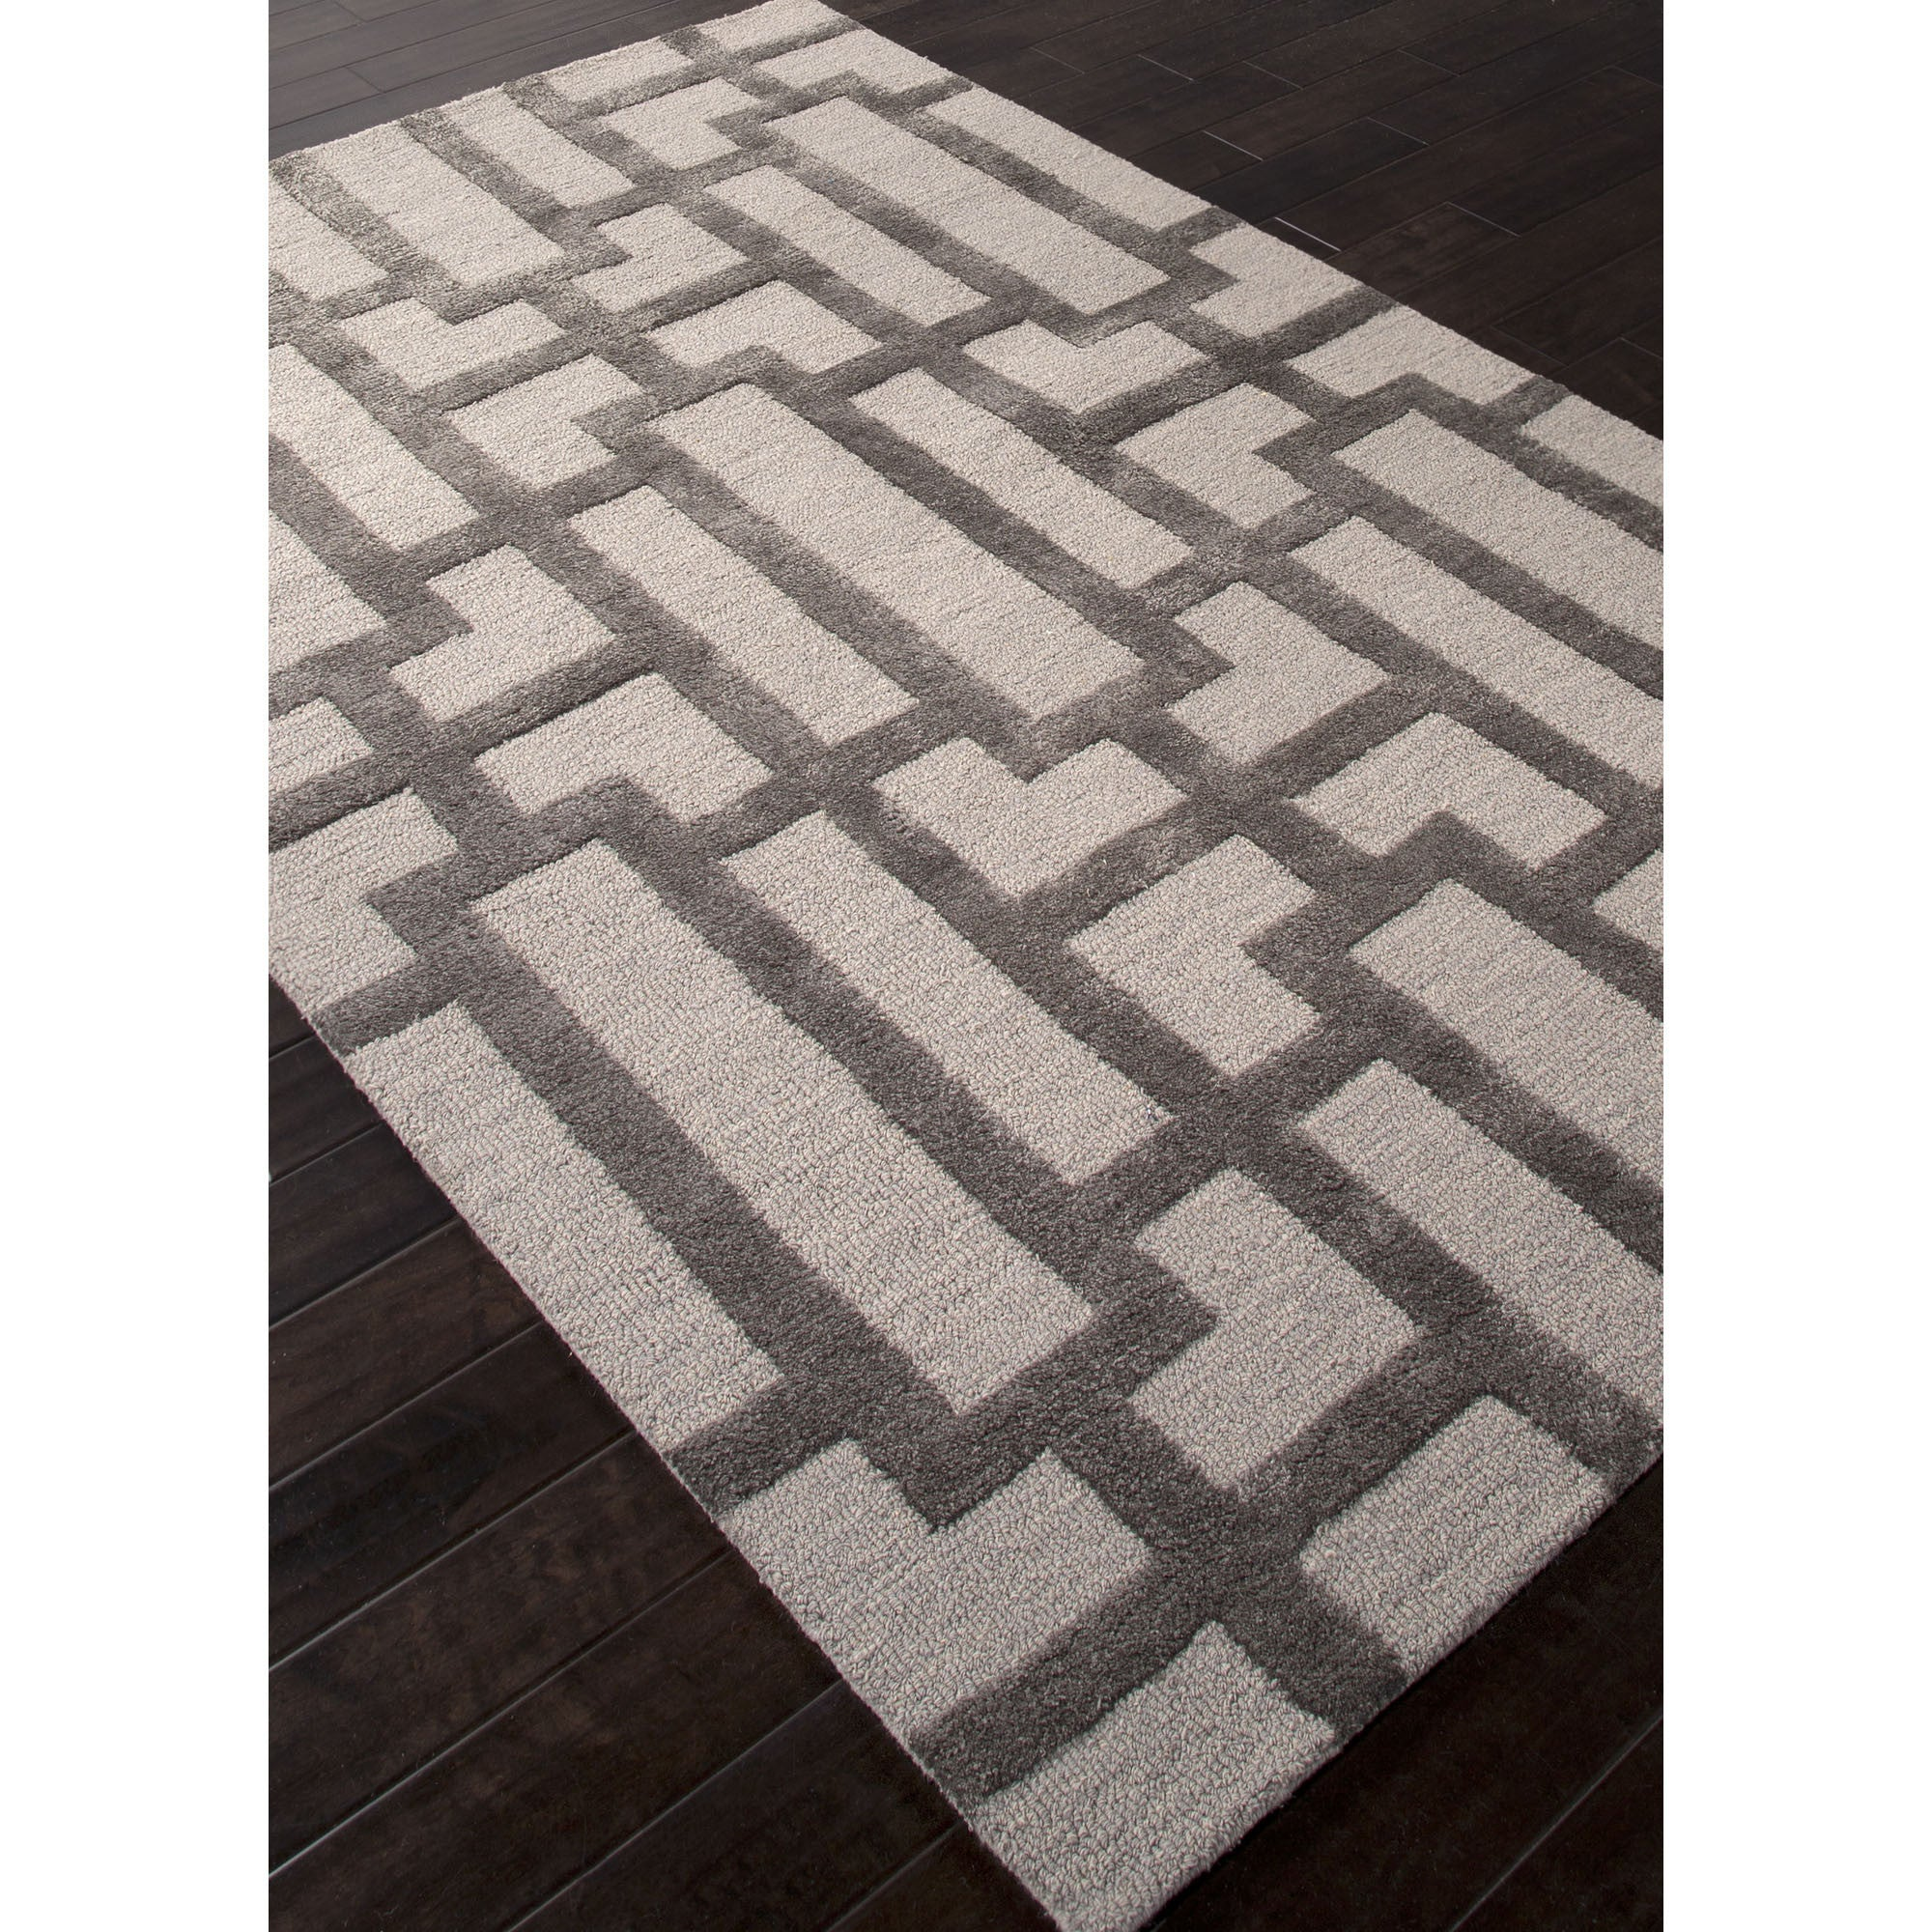 Jaipur rugs modern geometric pattern ivory gray wool and for Contemporary wool area rugs